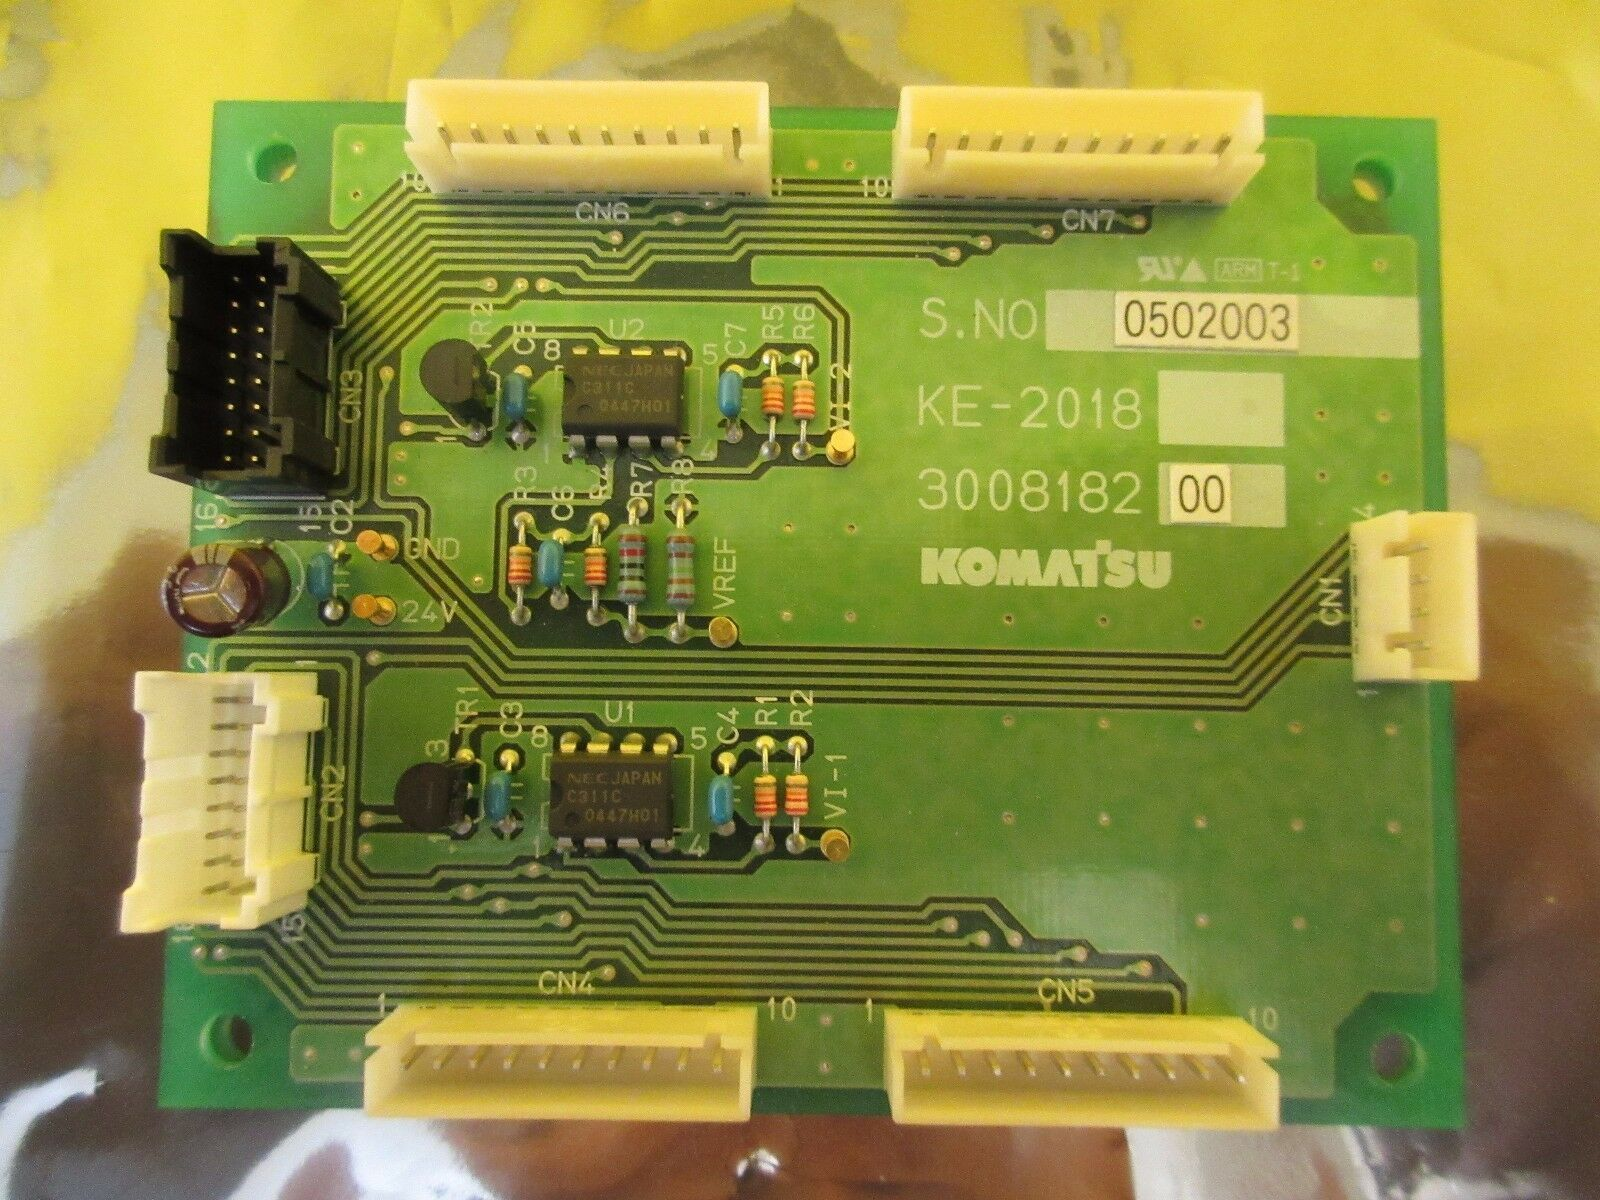 Komatsu 300818200 KE-2018 Interface Board PCB Used Working